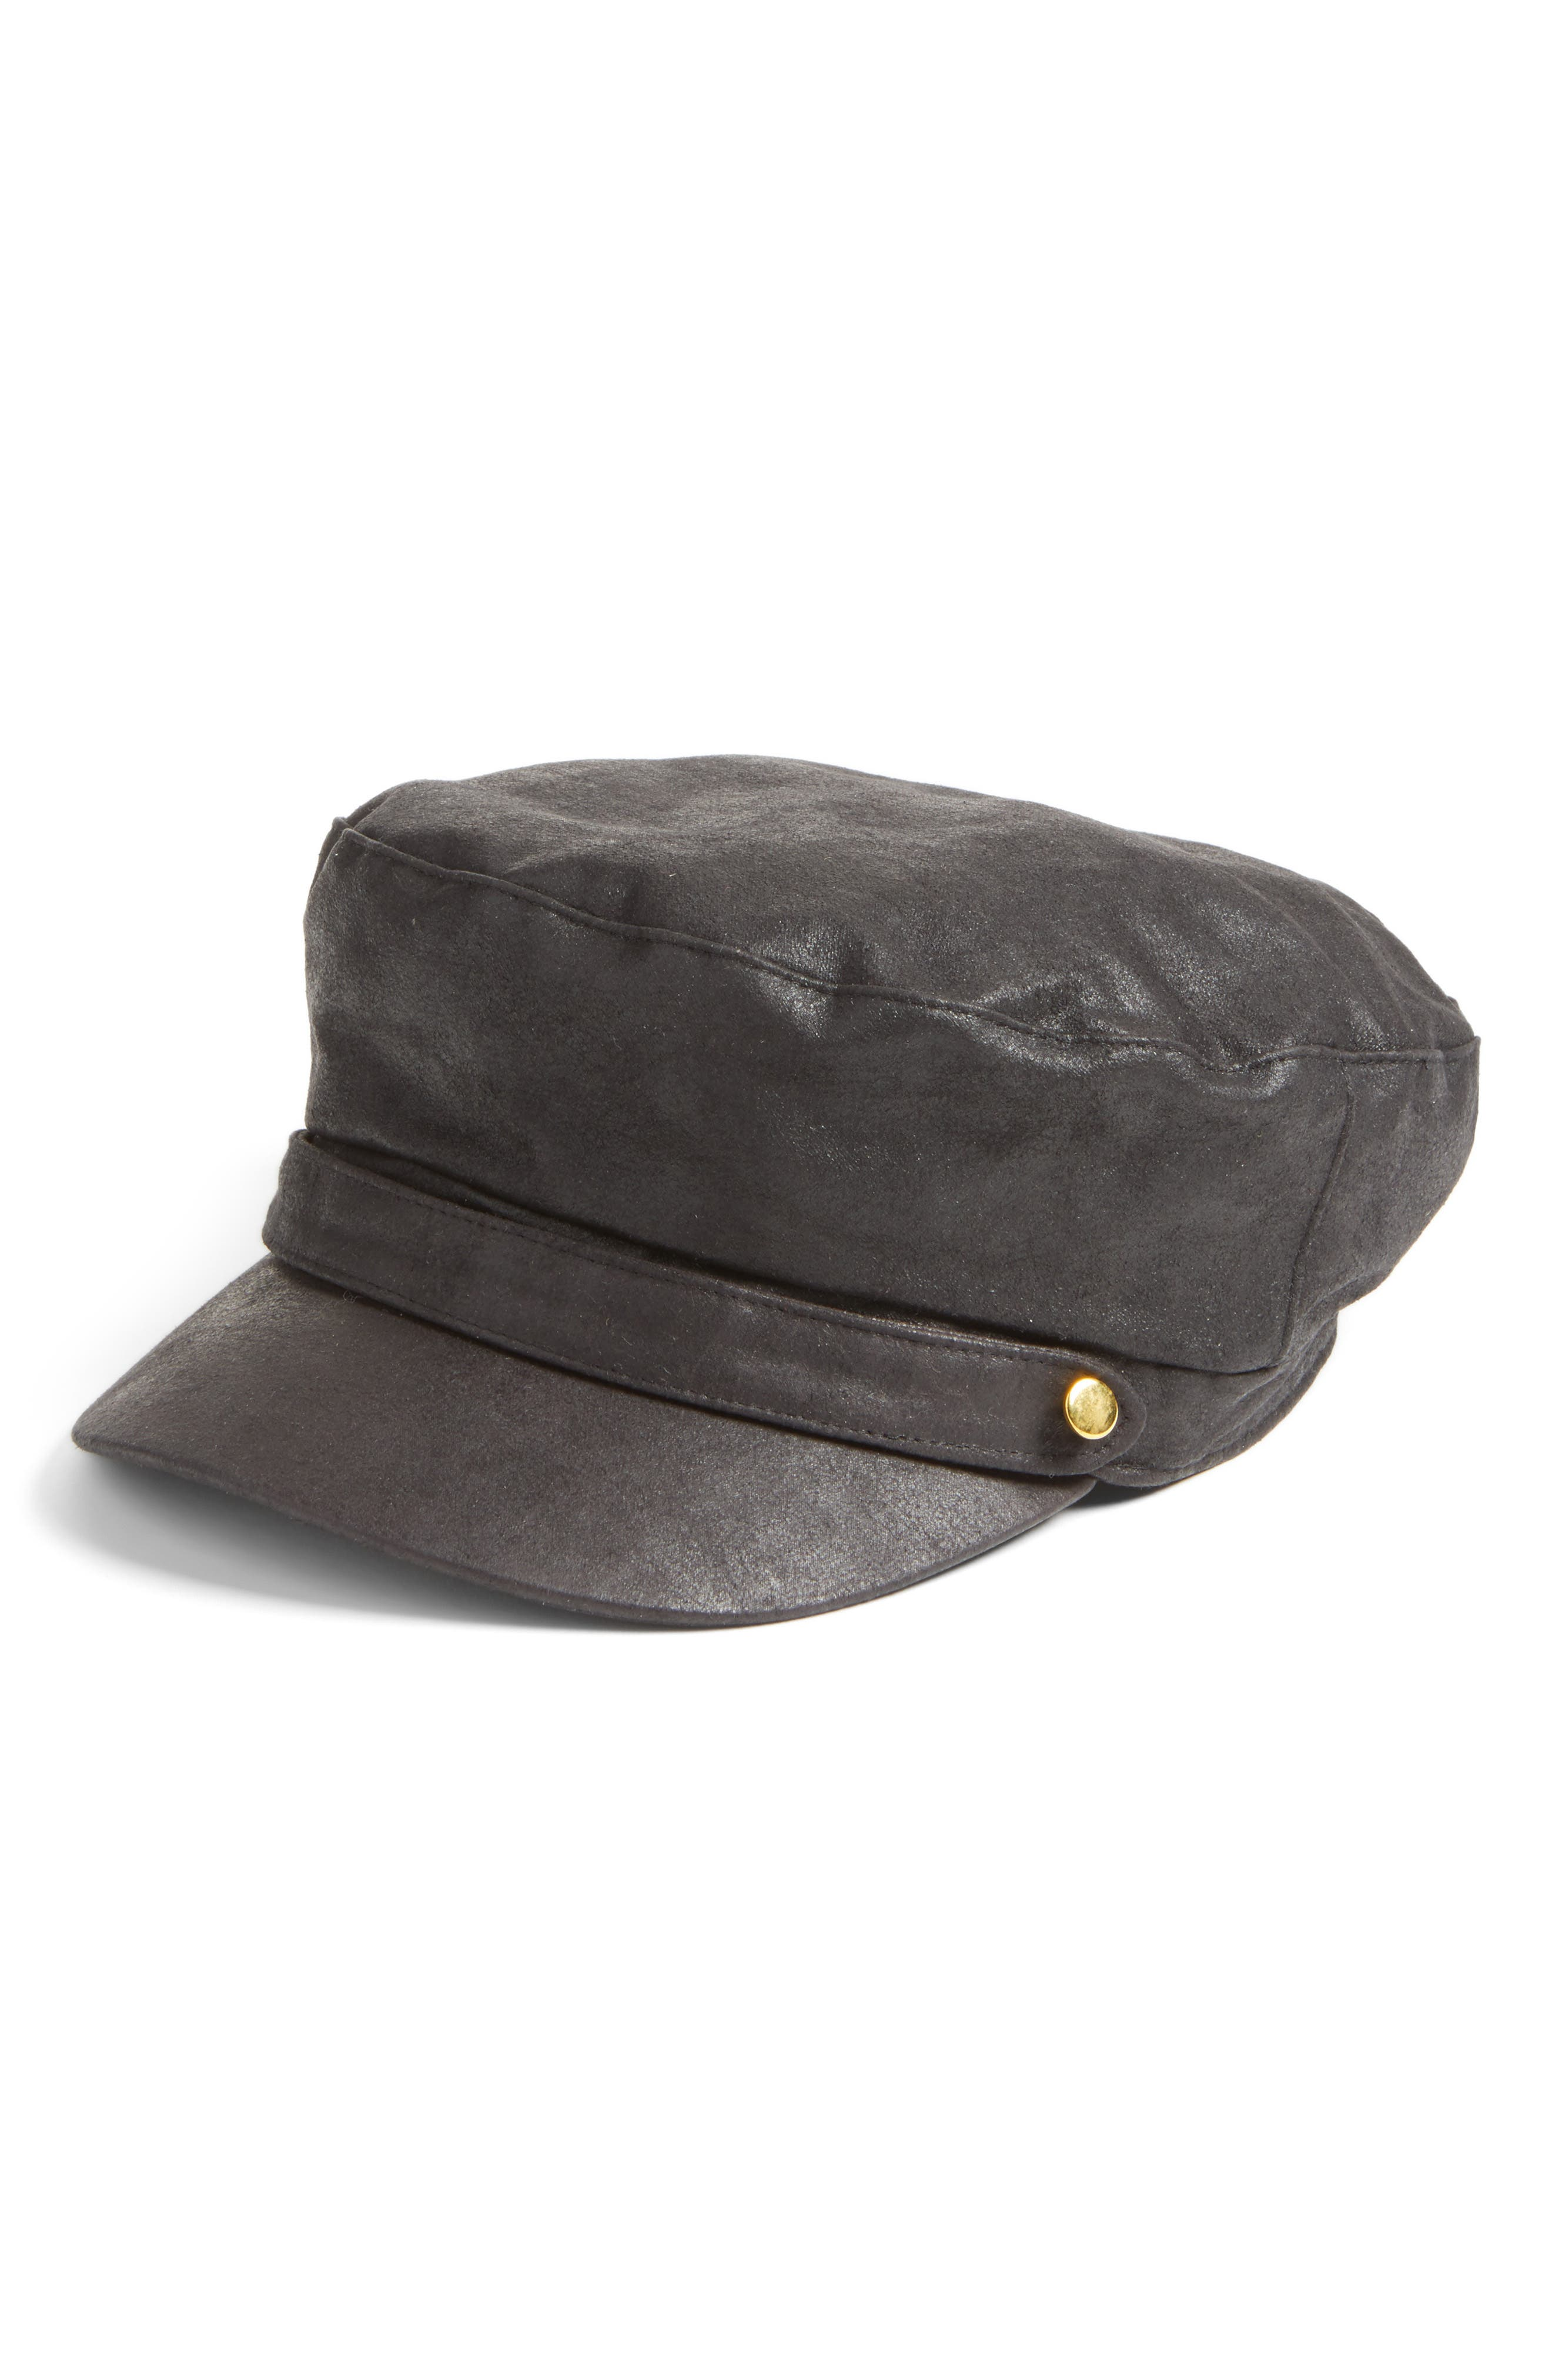 Main Image - August Hat Lieutenant Cap